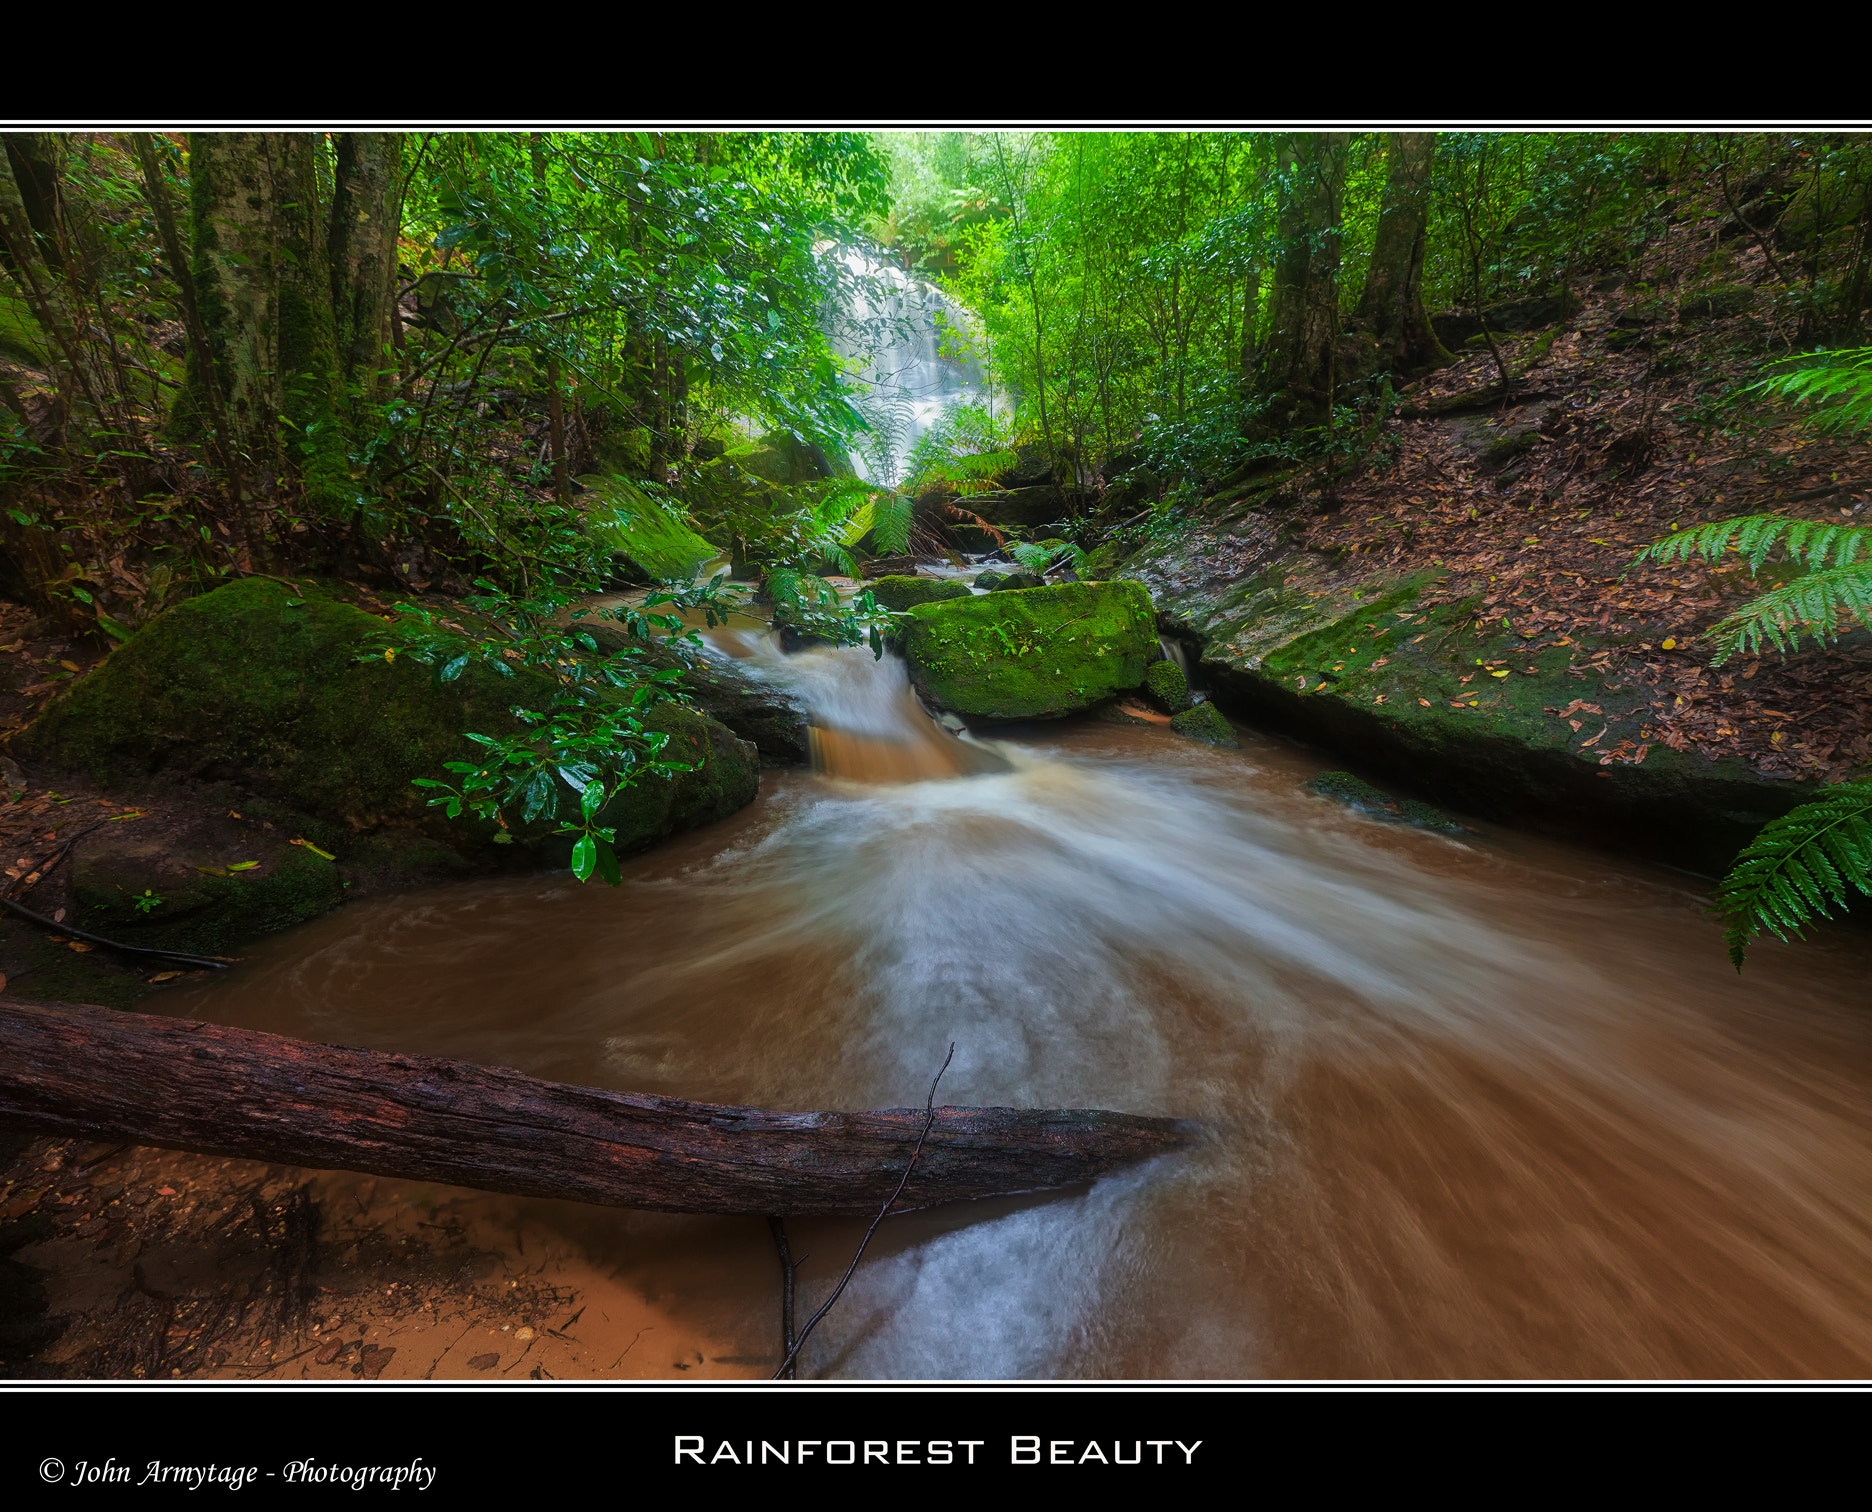 Photograph Rainforest Beauty by John Armytage on 500px